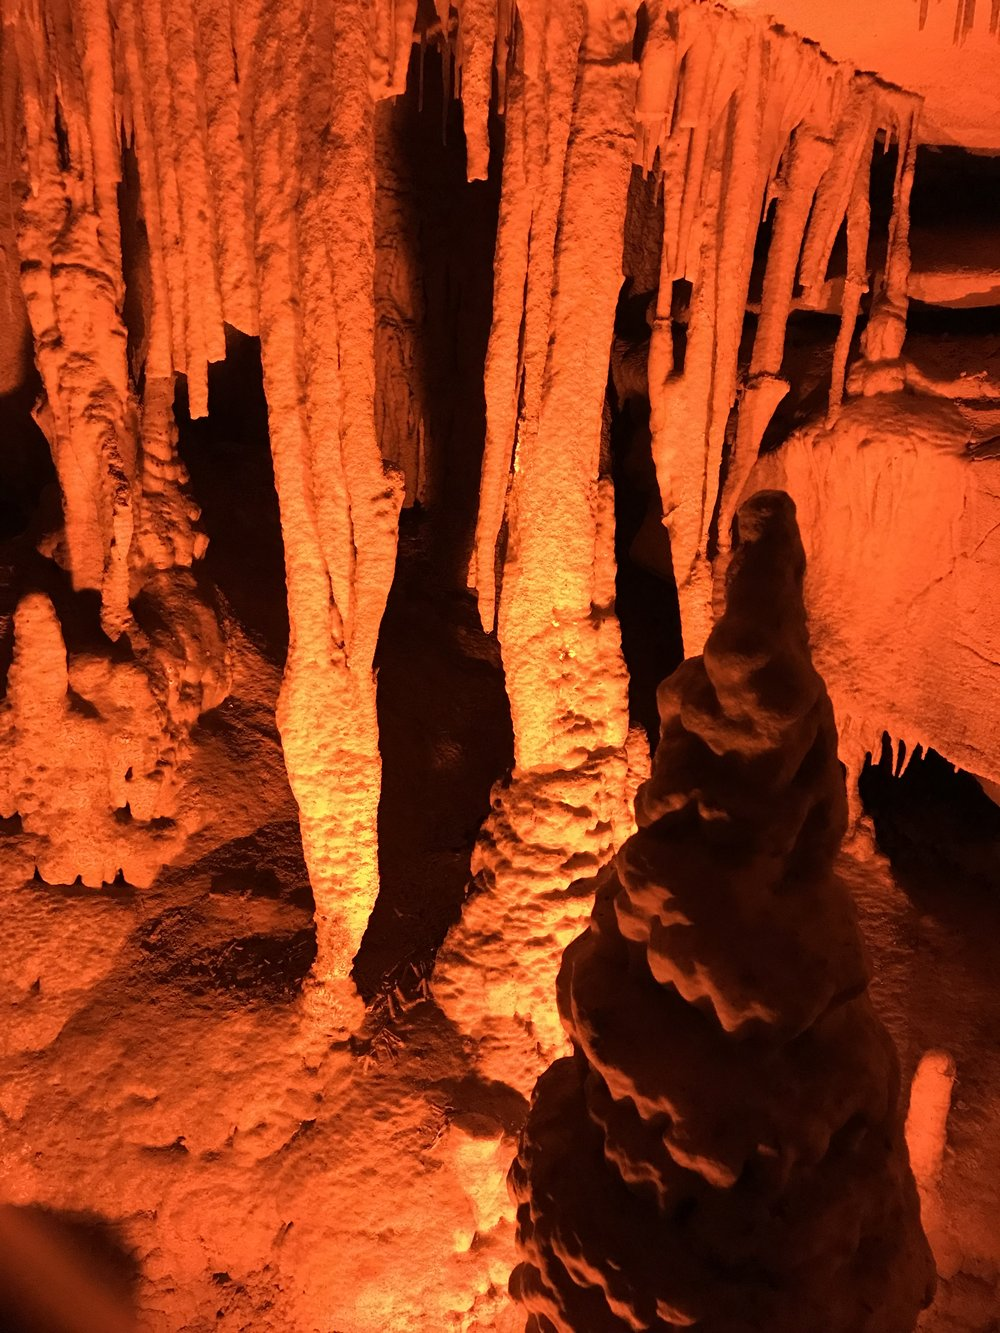 "Here is a view of the stalactites, stalagmites, and columns that we saw at the end of our Domes and Dripstones tour at Mammoth Cave. The only lights in the cave were the occasional orange low lights that lit our way. No flash photography. So amazing the long process that it has taken for these rock formations to ""grow."" It was also very cool when our tour guide turned off all the lights in the cave. We could see absolutely nothing! How often do we experience zero light like that?"